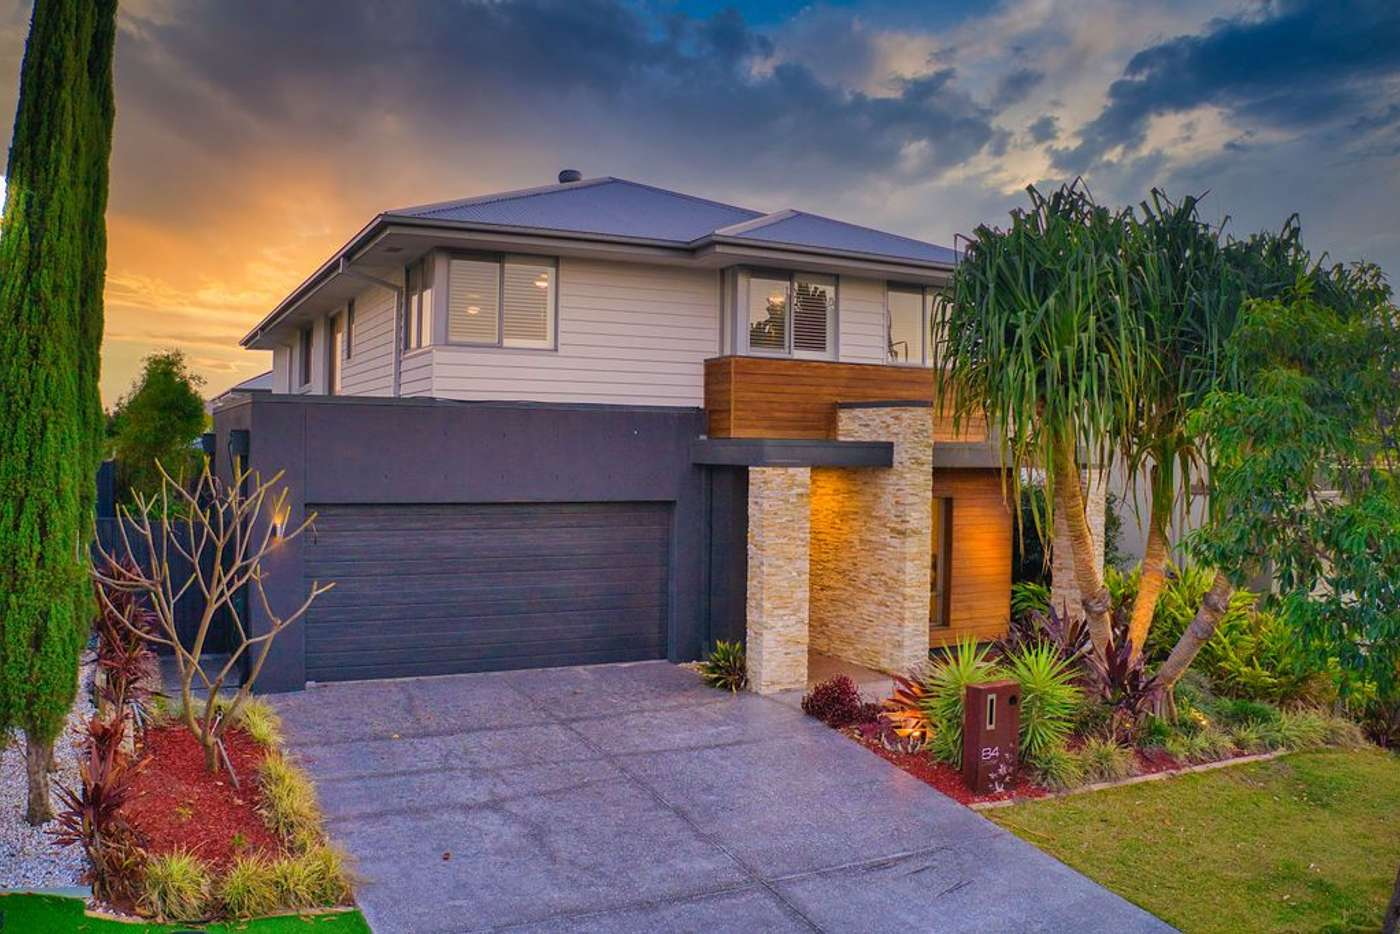 Main view of Homely house listing, 84 Cooper Crescent, Rochedale QLD 4123